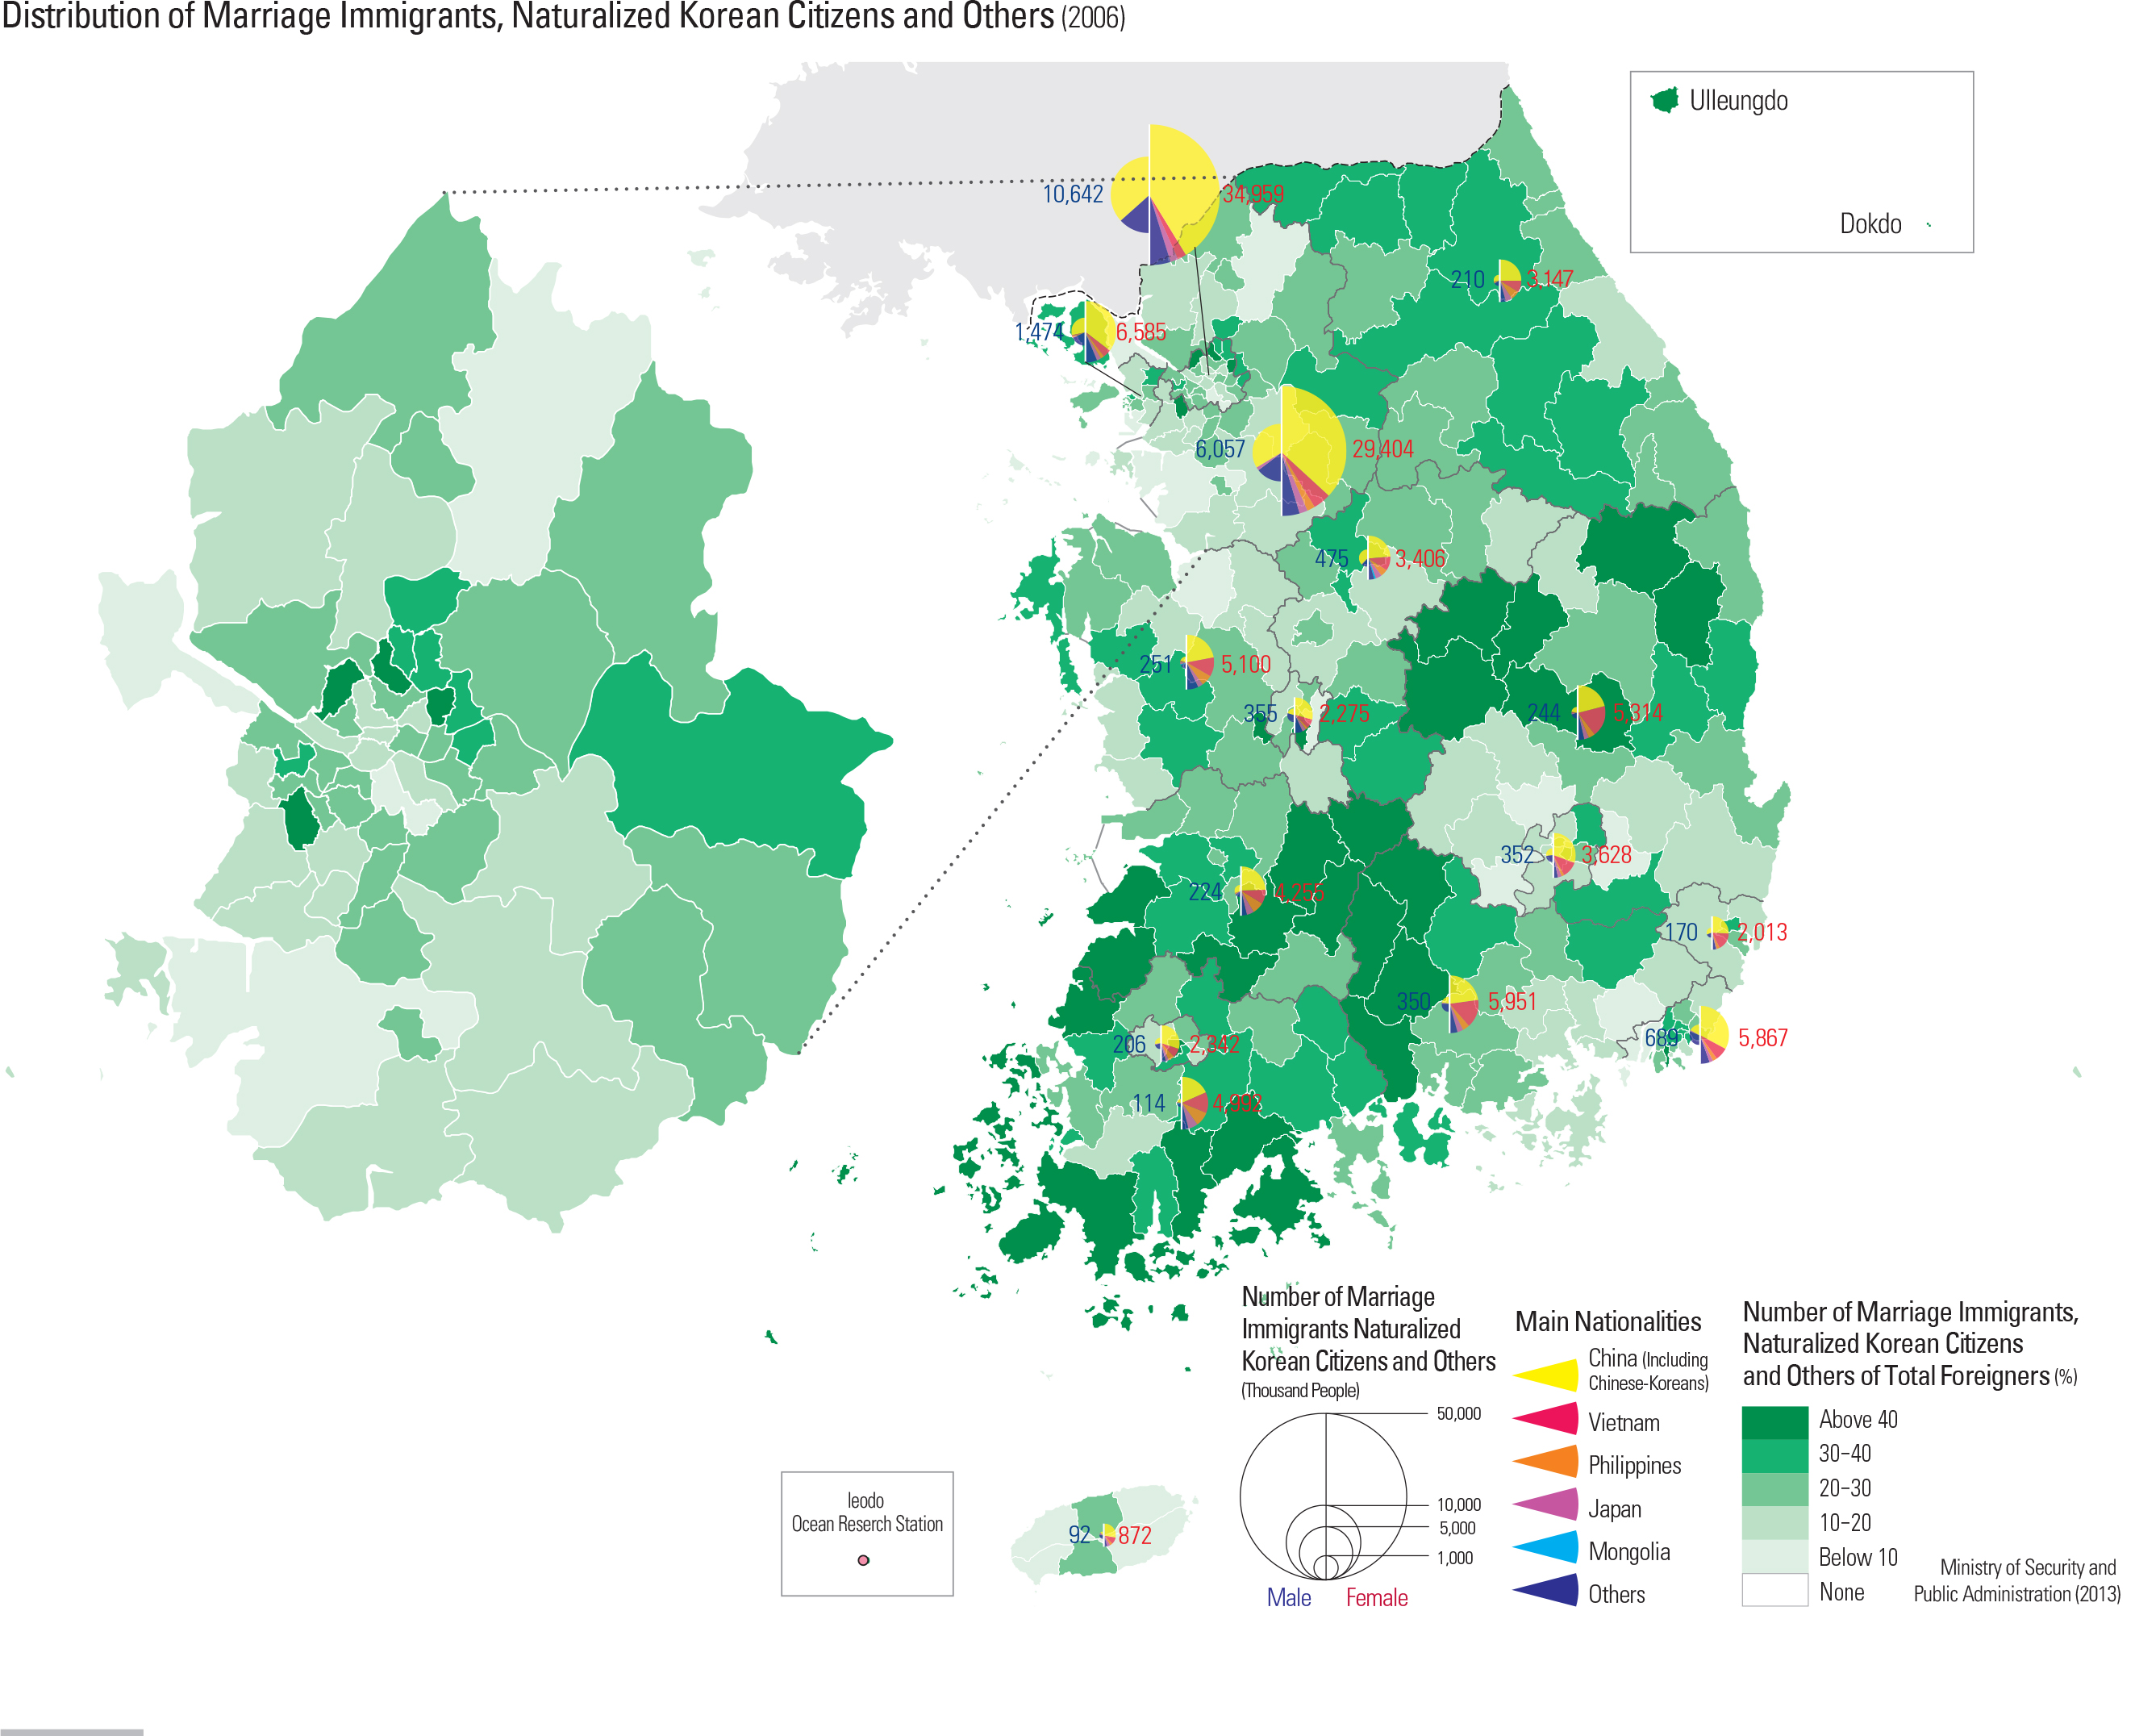 Distribution of Marriage Immigrants, Naturalized Korean Citizens and Others (2006)